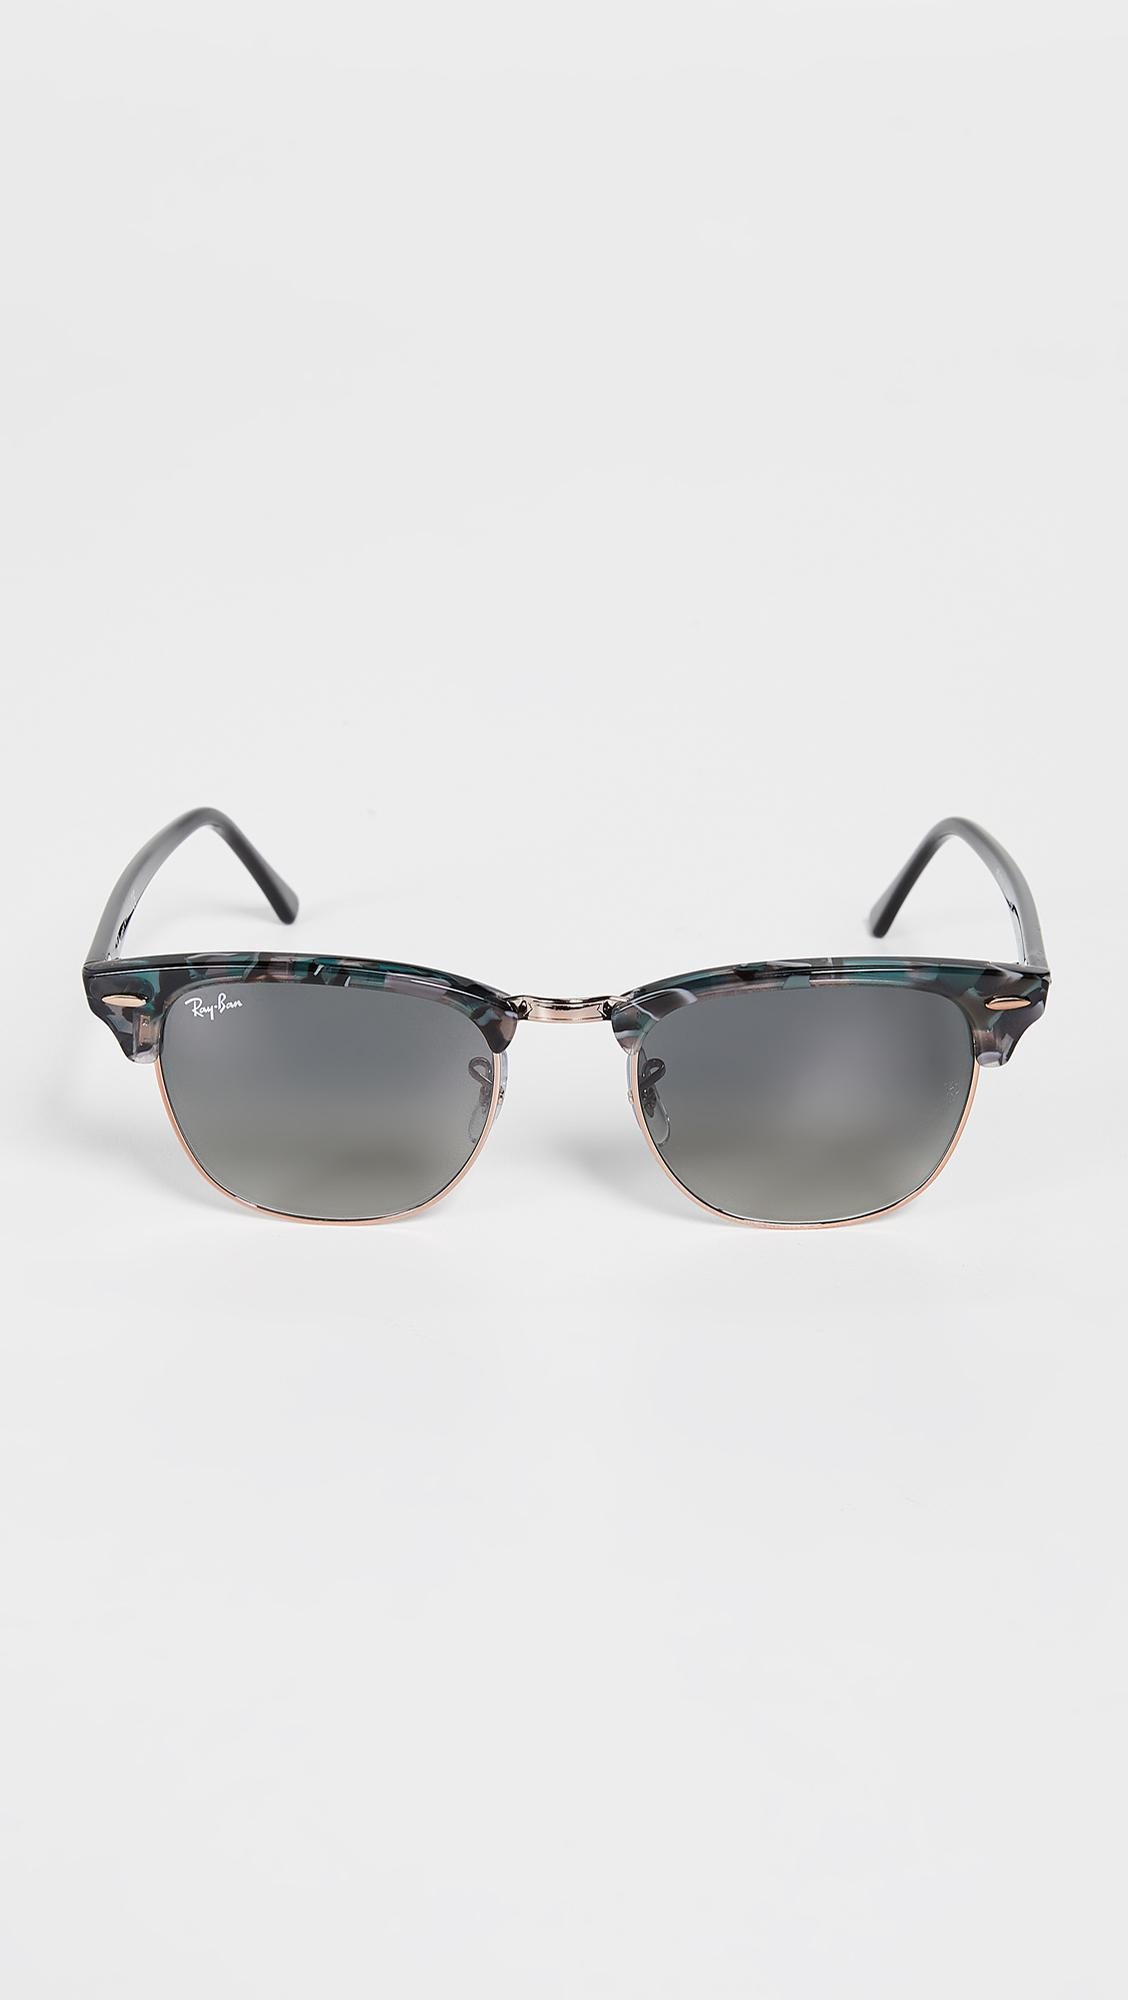 5ec22d19d32 Ray-Ban Clubmaster Sunglasses in Gray for Men - Lyst